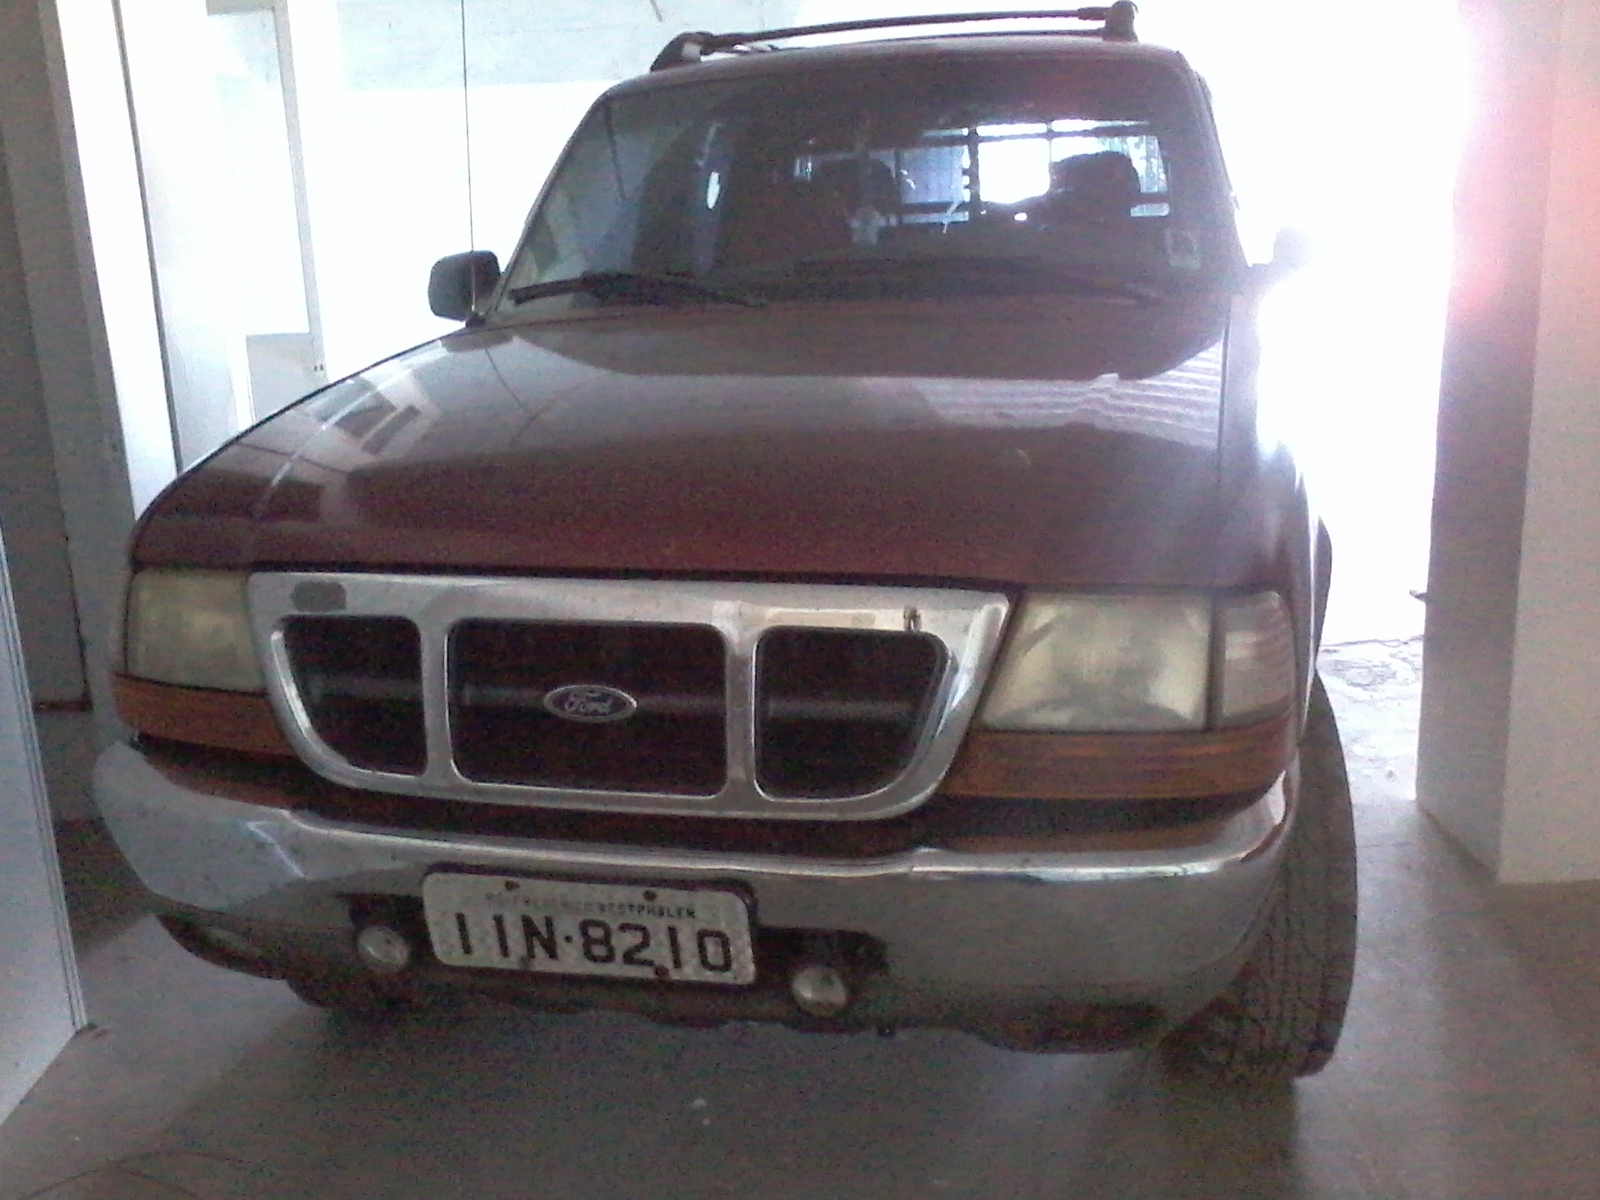 LOTE 00512.001